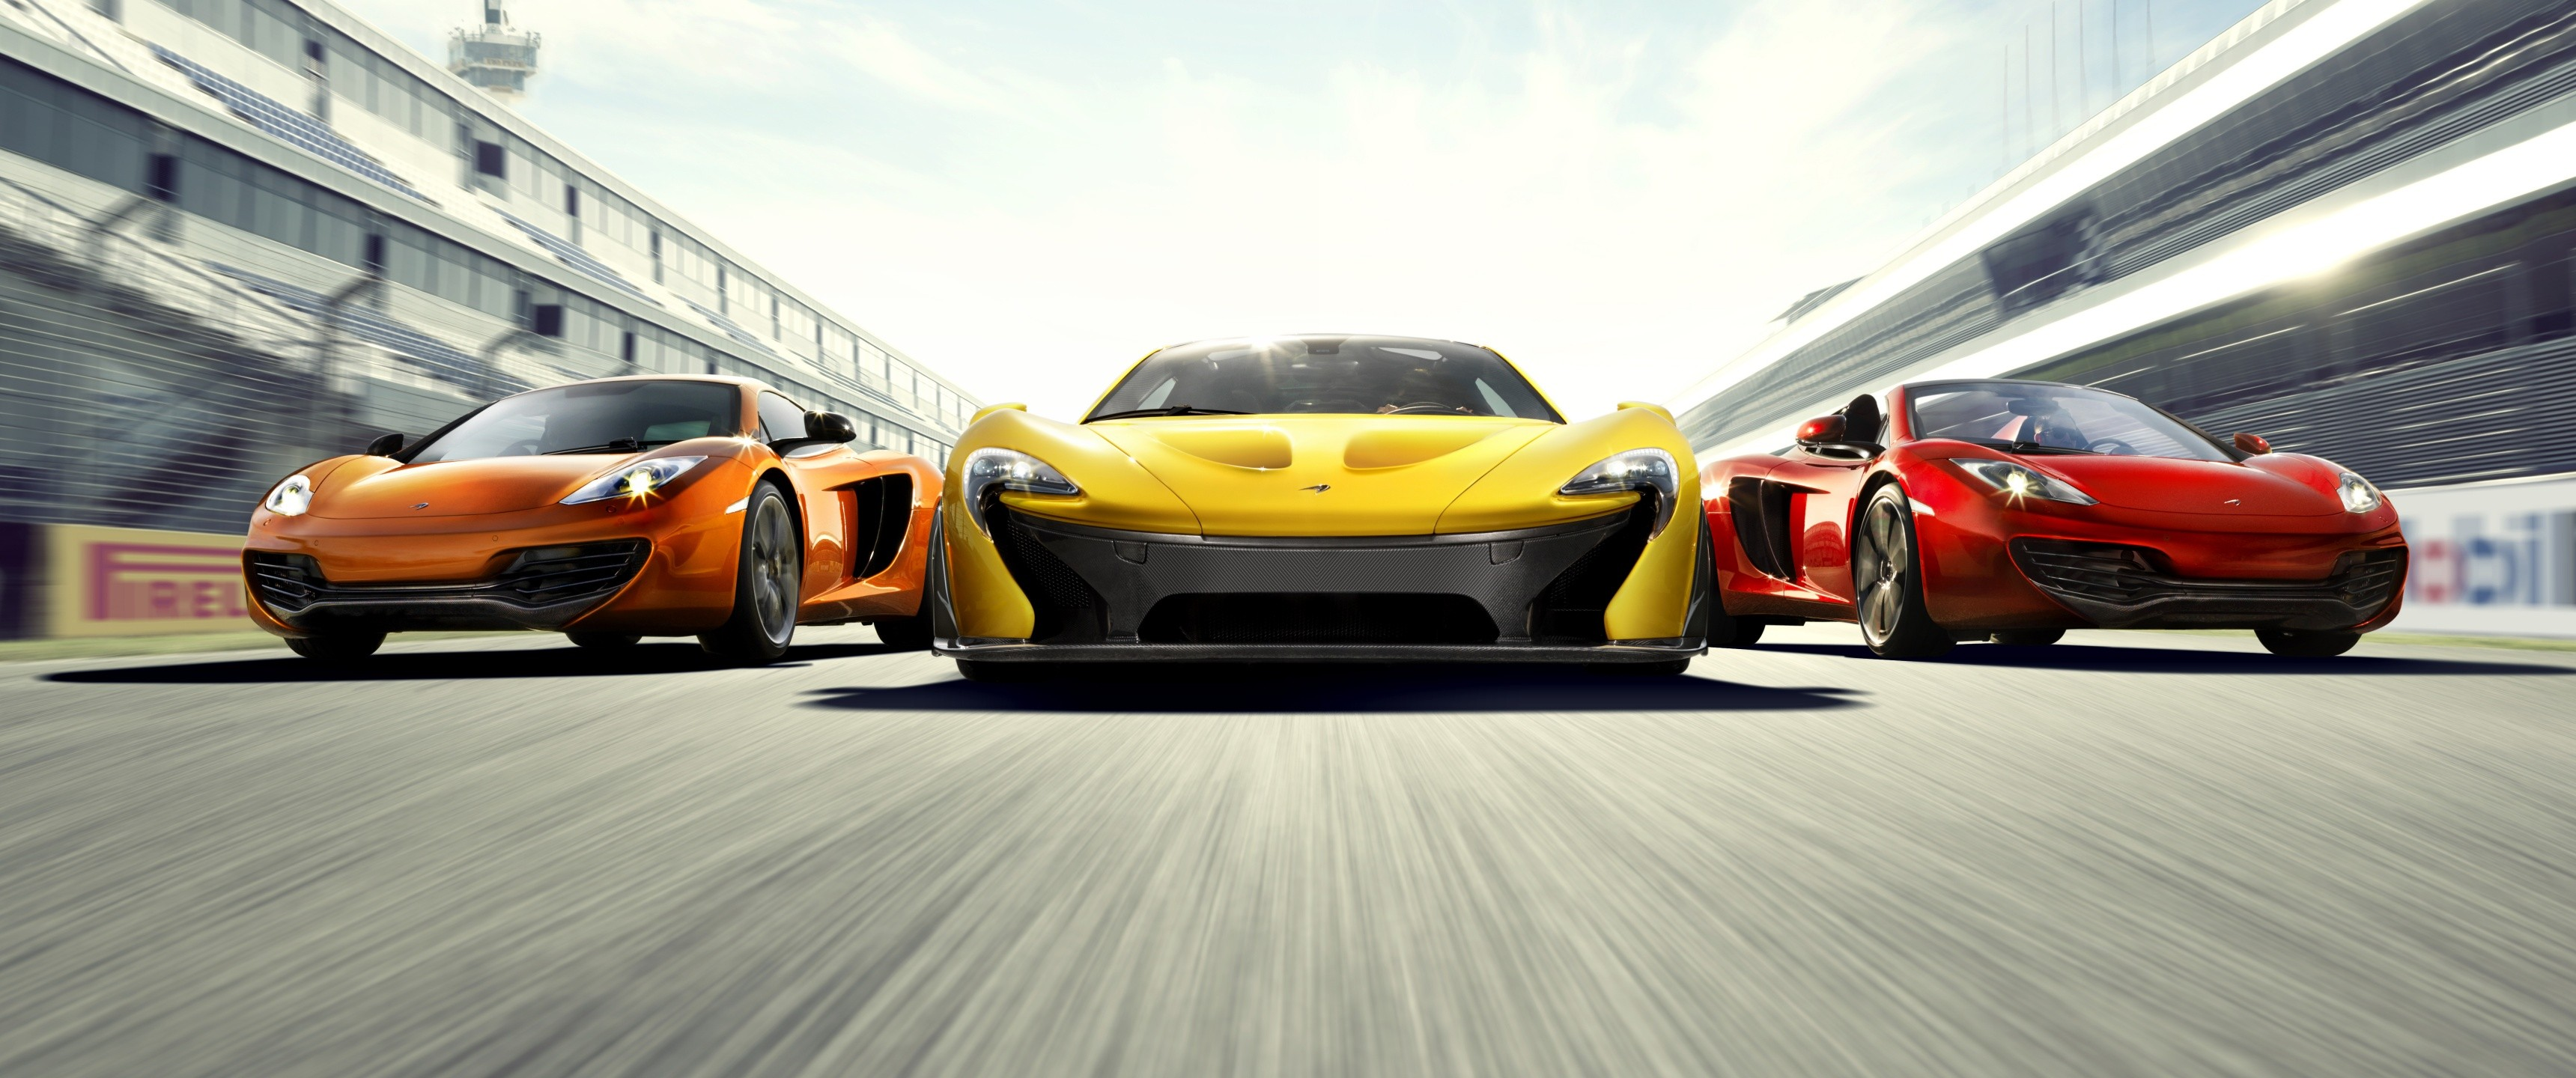 Mclaren P1 Race Tracks Hd Cars 4k Wallpapers Images